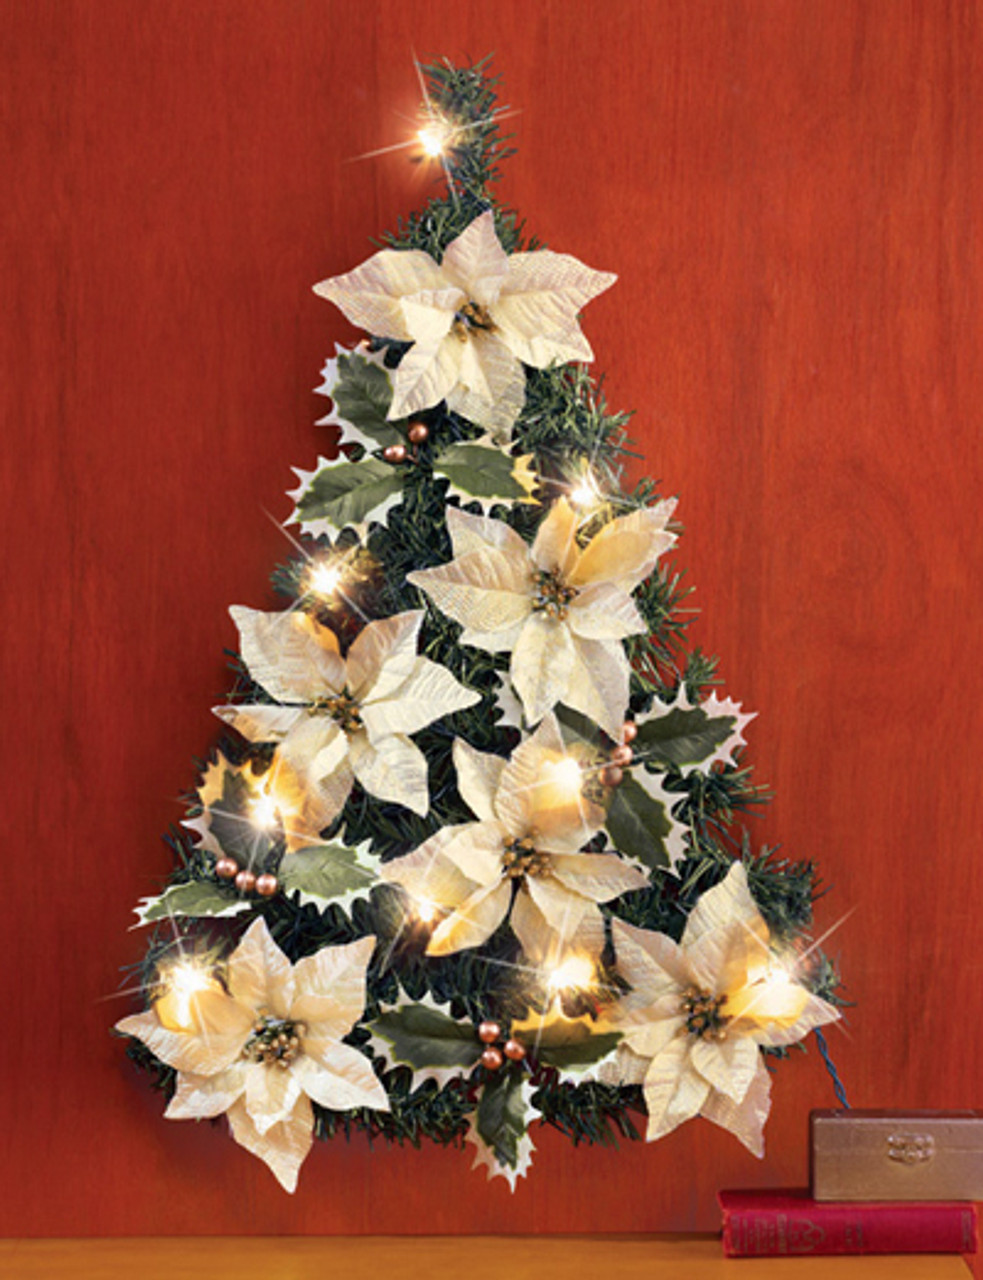 poinsettia christmas tree wall decoration - Poinsettia Christmas Tree Decorations